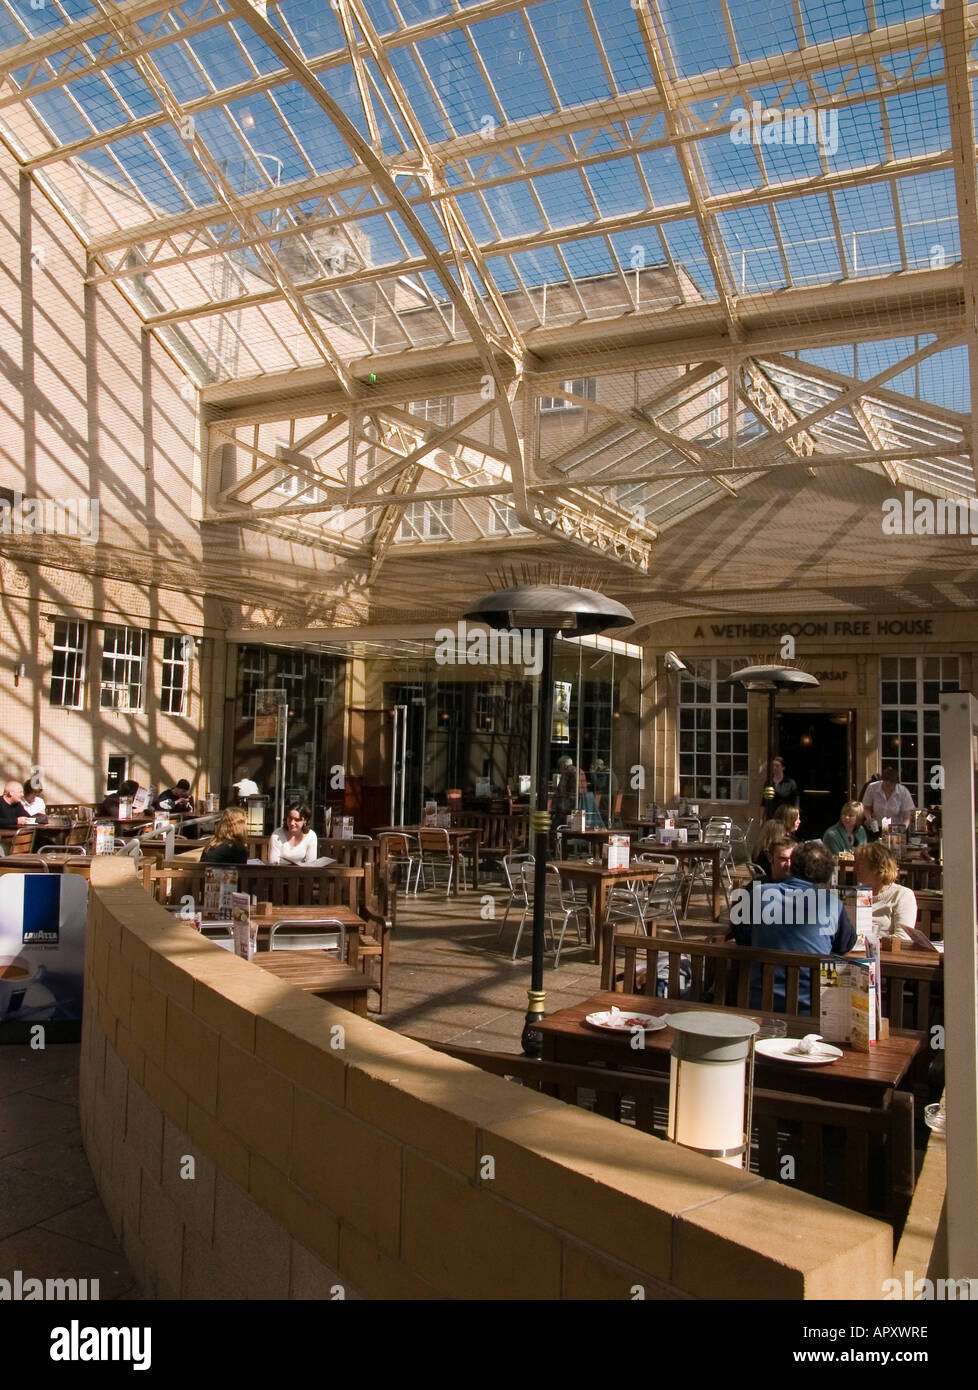 interior aberystwyth railway station with wetherspoons pub in the courtyard april 2005 under a glazed cast iron canopy - Stock Image